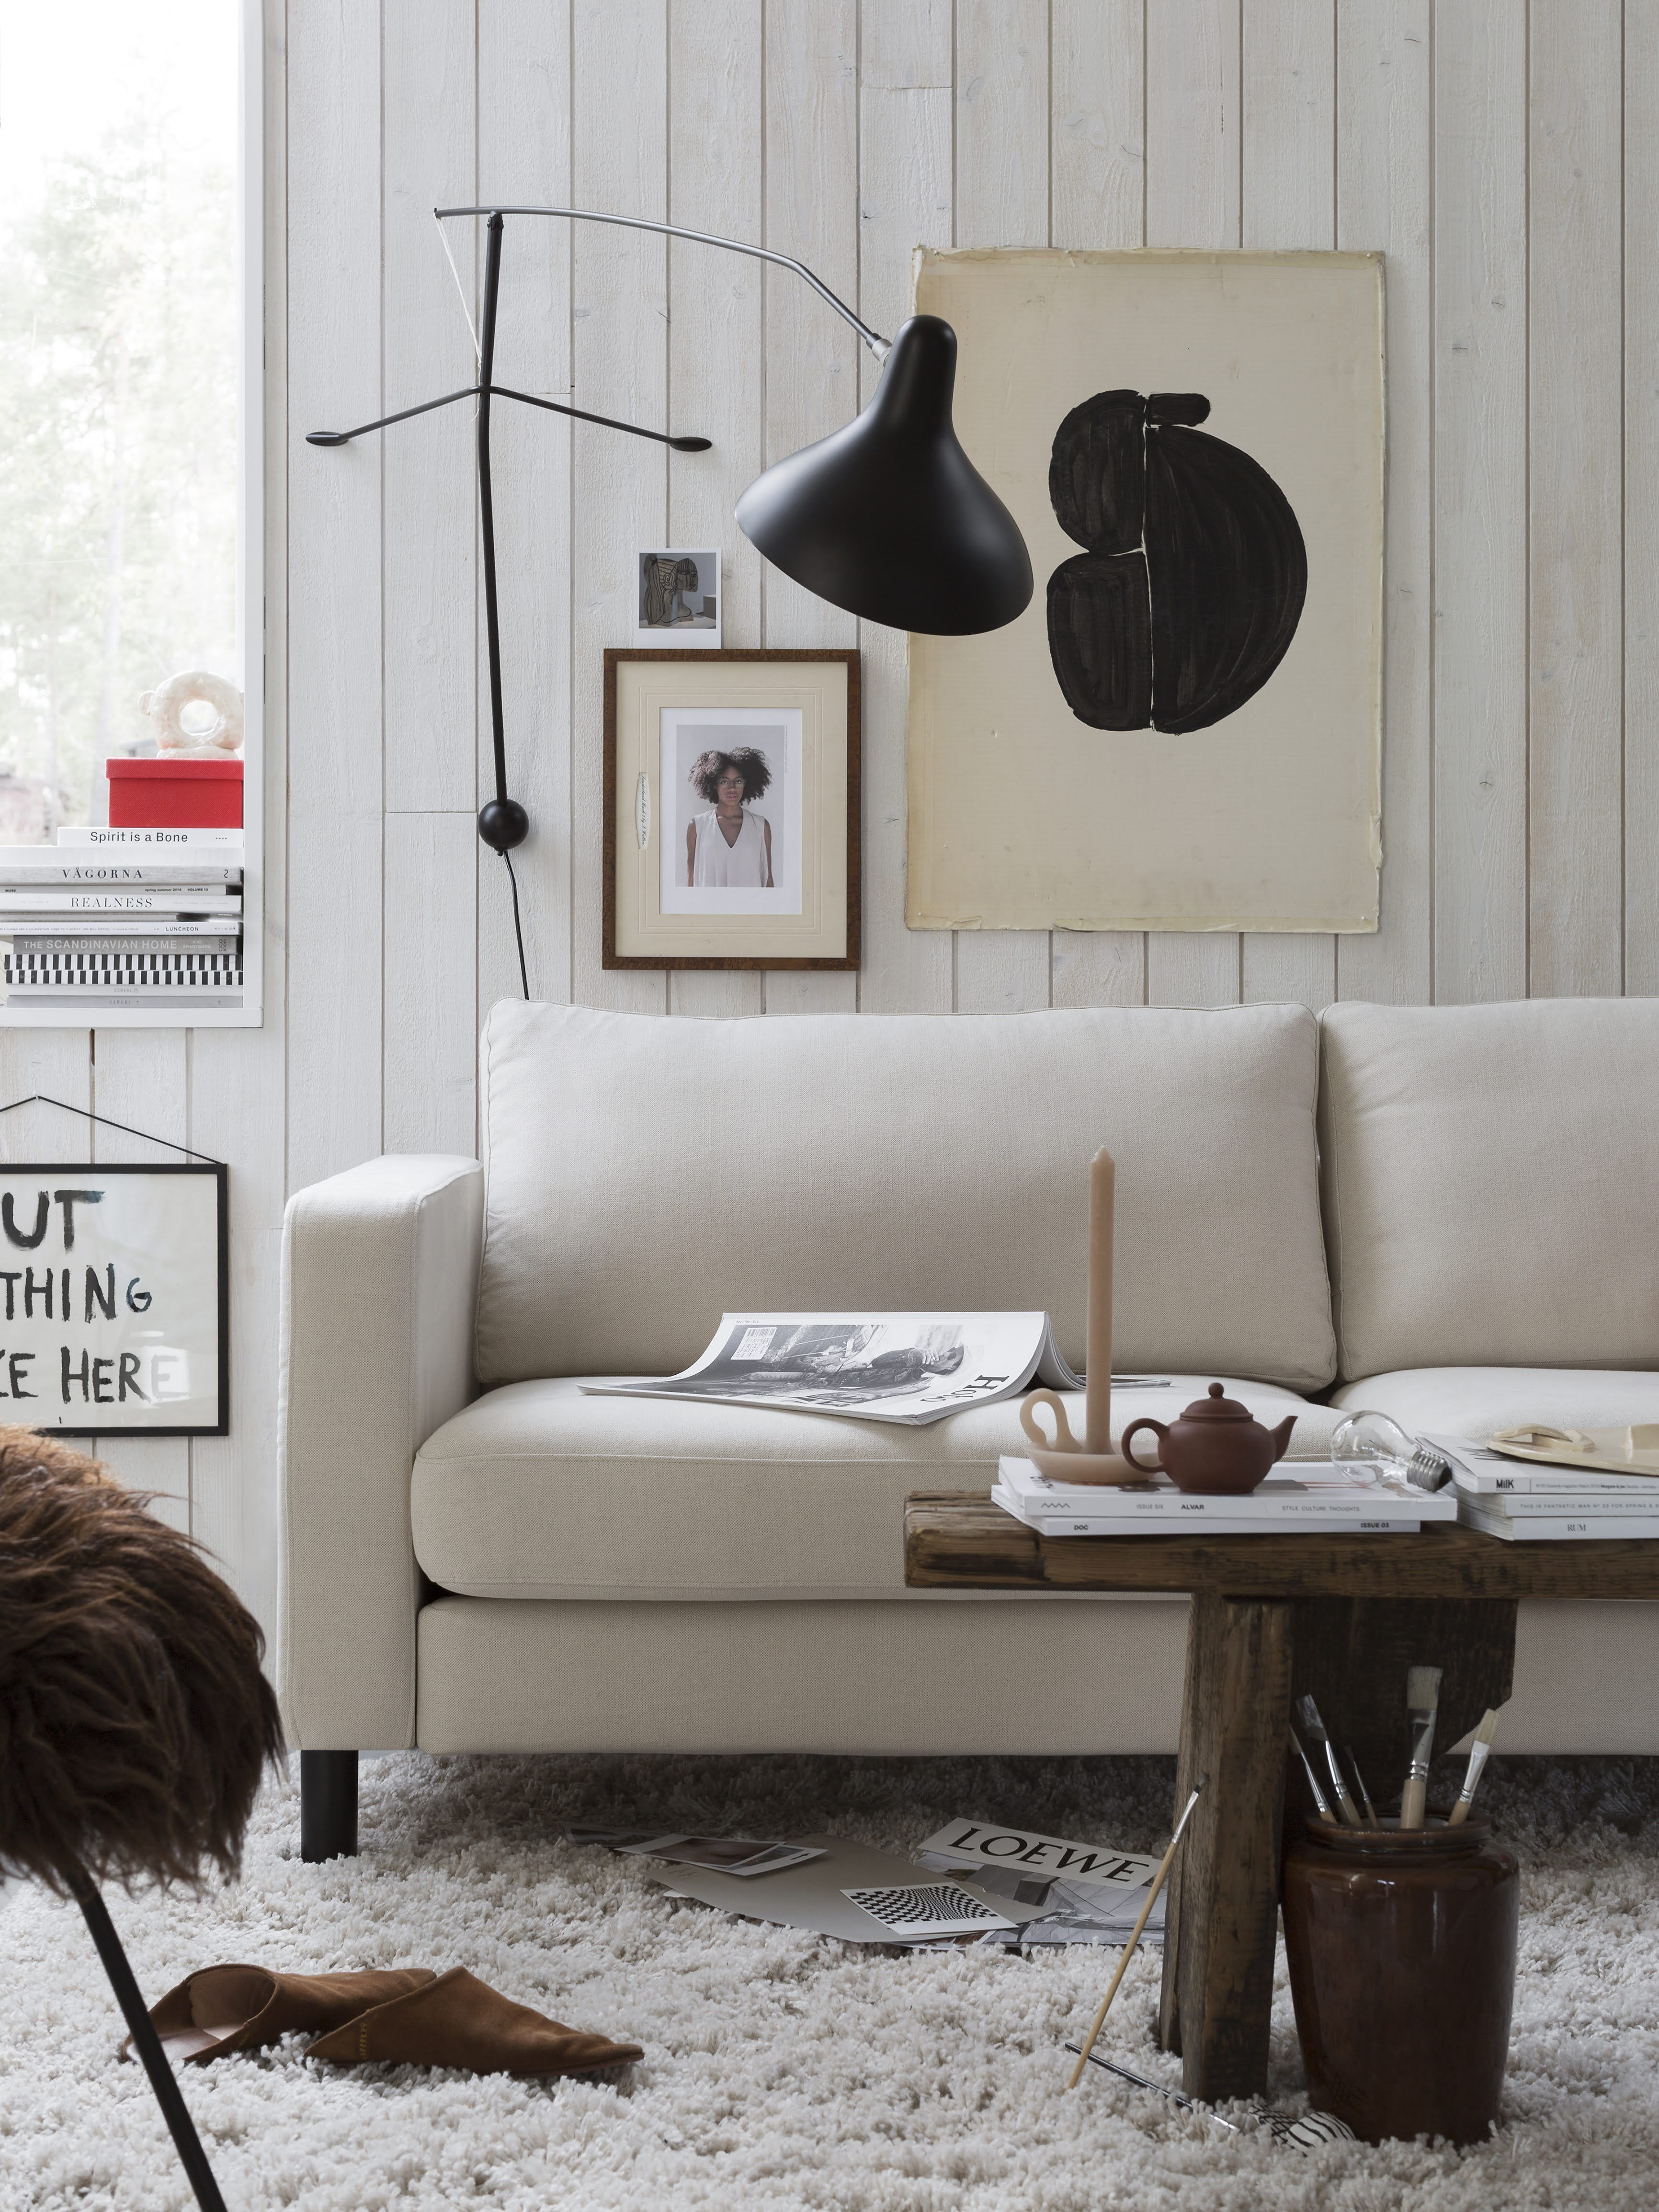 Ikea Karlstad Bemz Cotton Cover In 2020 Affordable Sofa Cosy Living Room Modern Wall Lamp Design